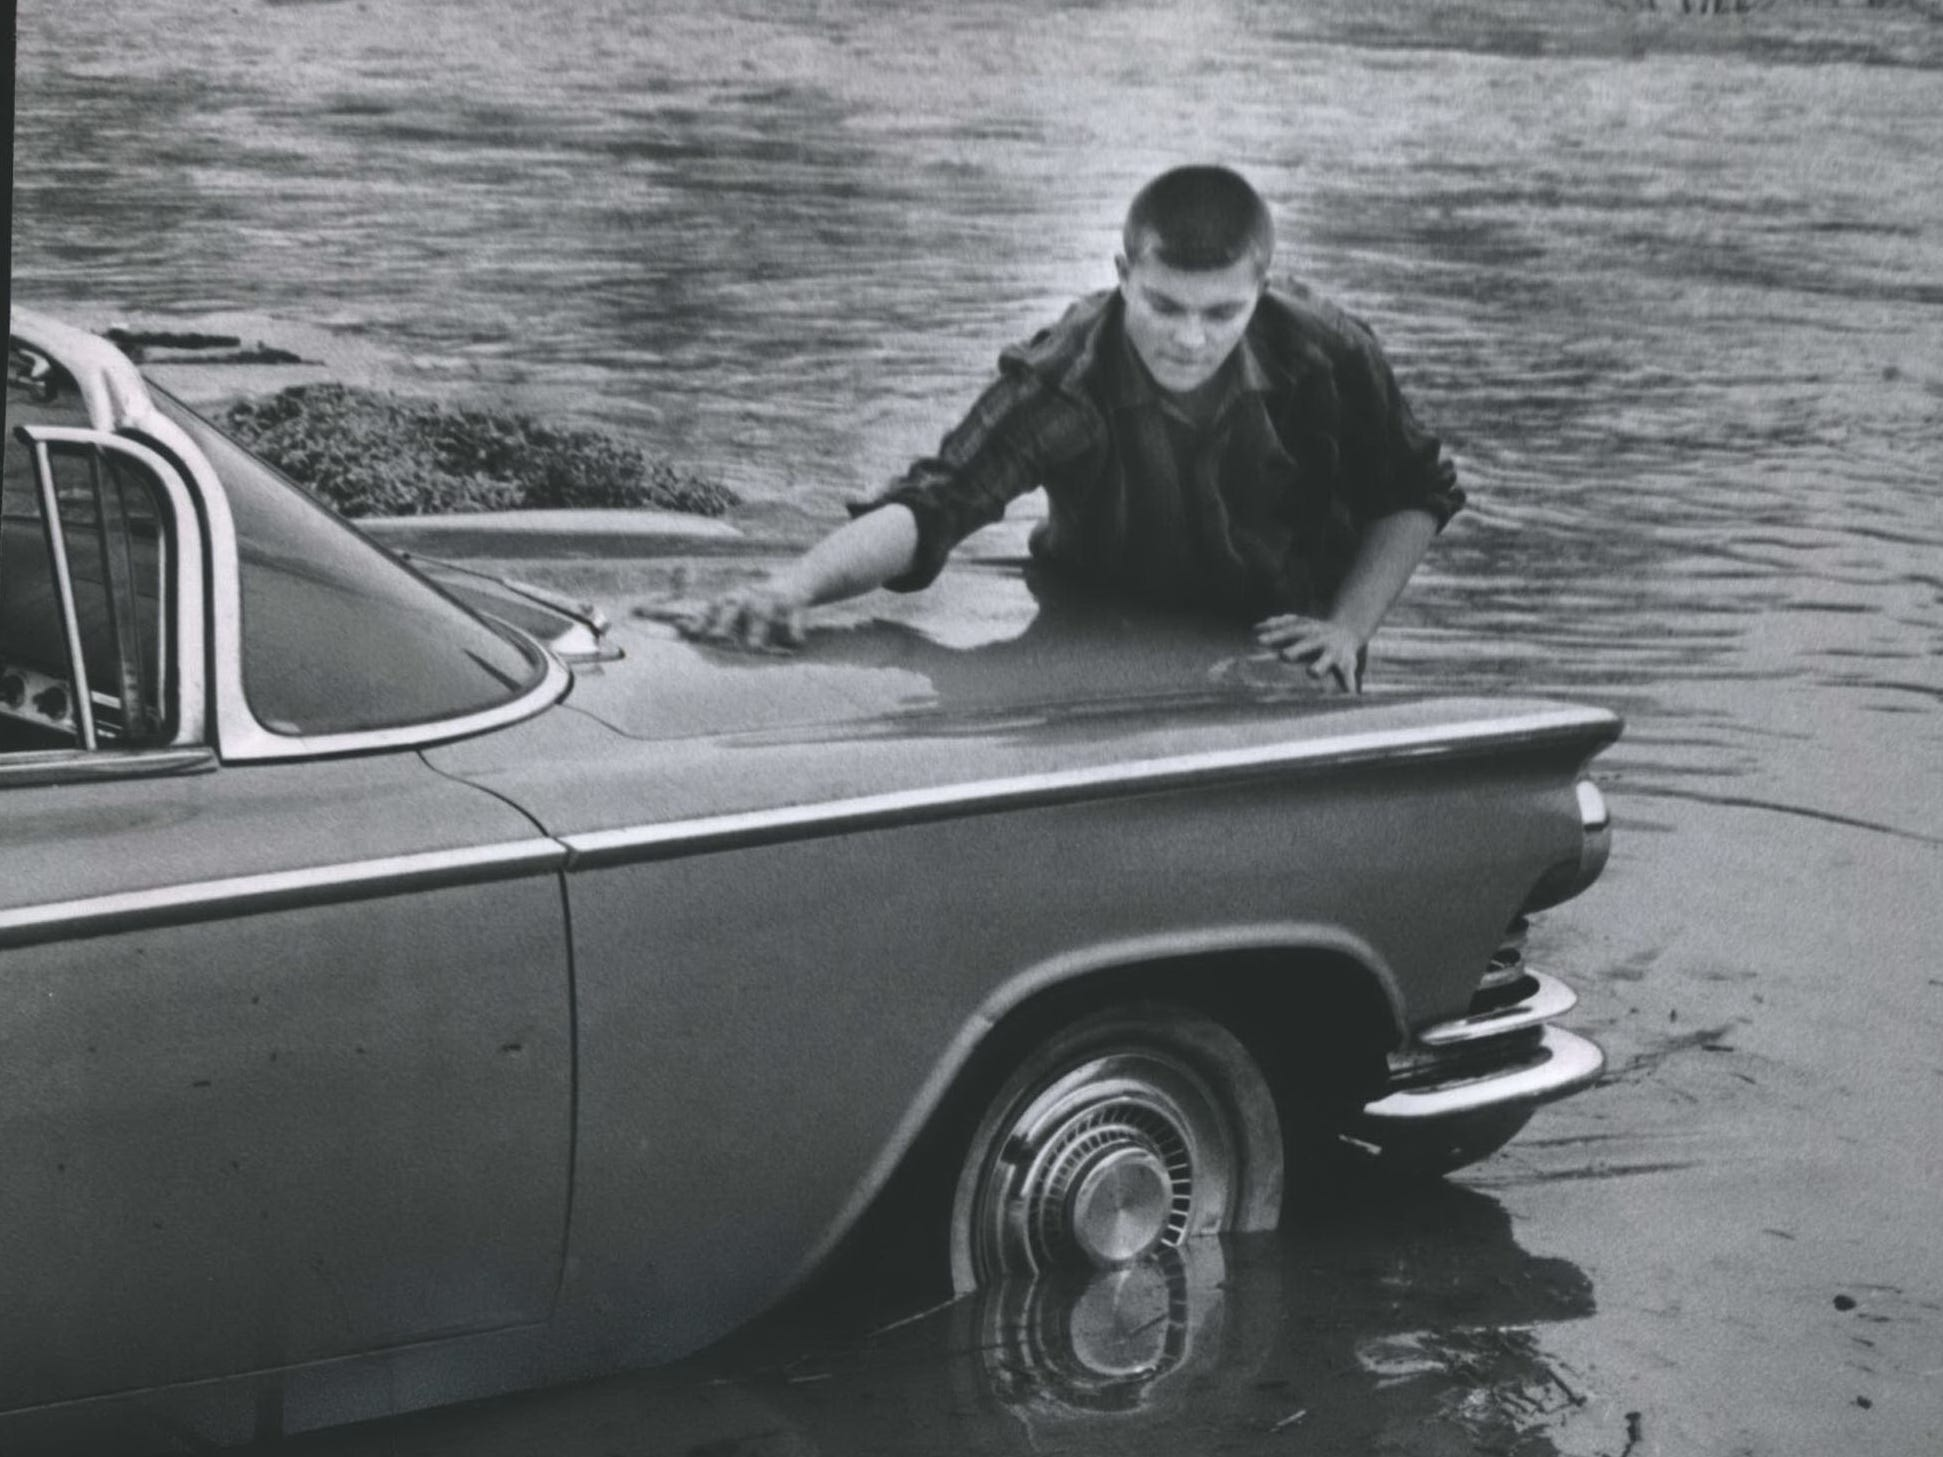 Nick Mollgaard of Wauwatosa cleans off his car as it stands in nearly a foot of water west of downtown Wauwatosa, where the Menomonee River had overflowed their banks. This photo was published in the March 30, 1960, Milwaukee Journal.